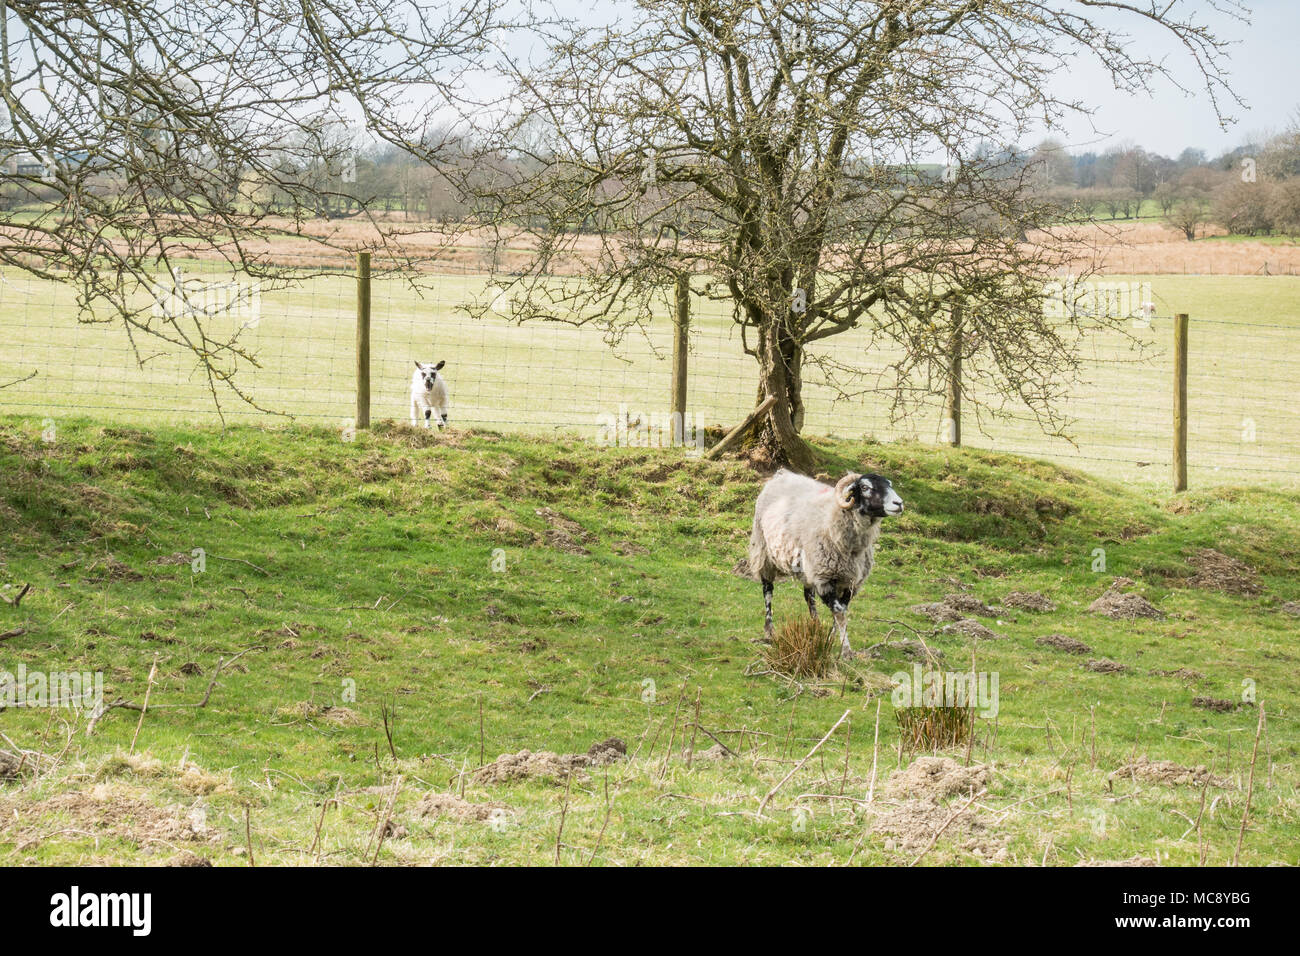 lamb on the wrong side of the fence from its mother - UK - Stock Image